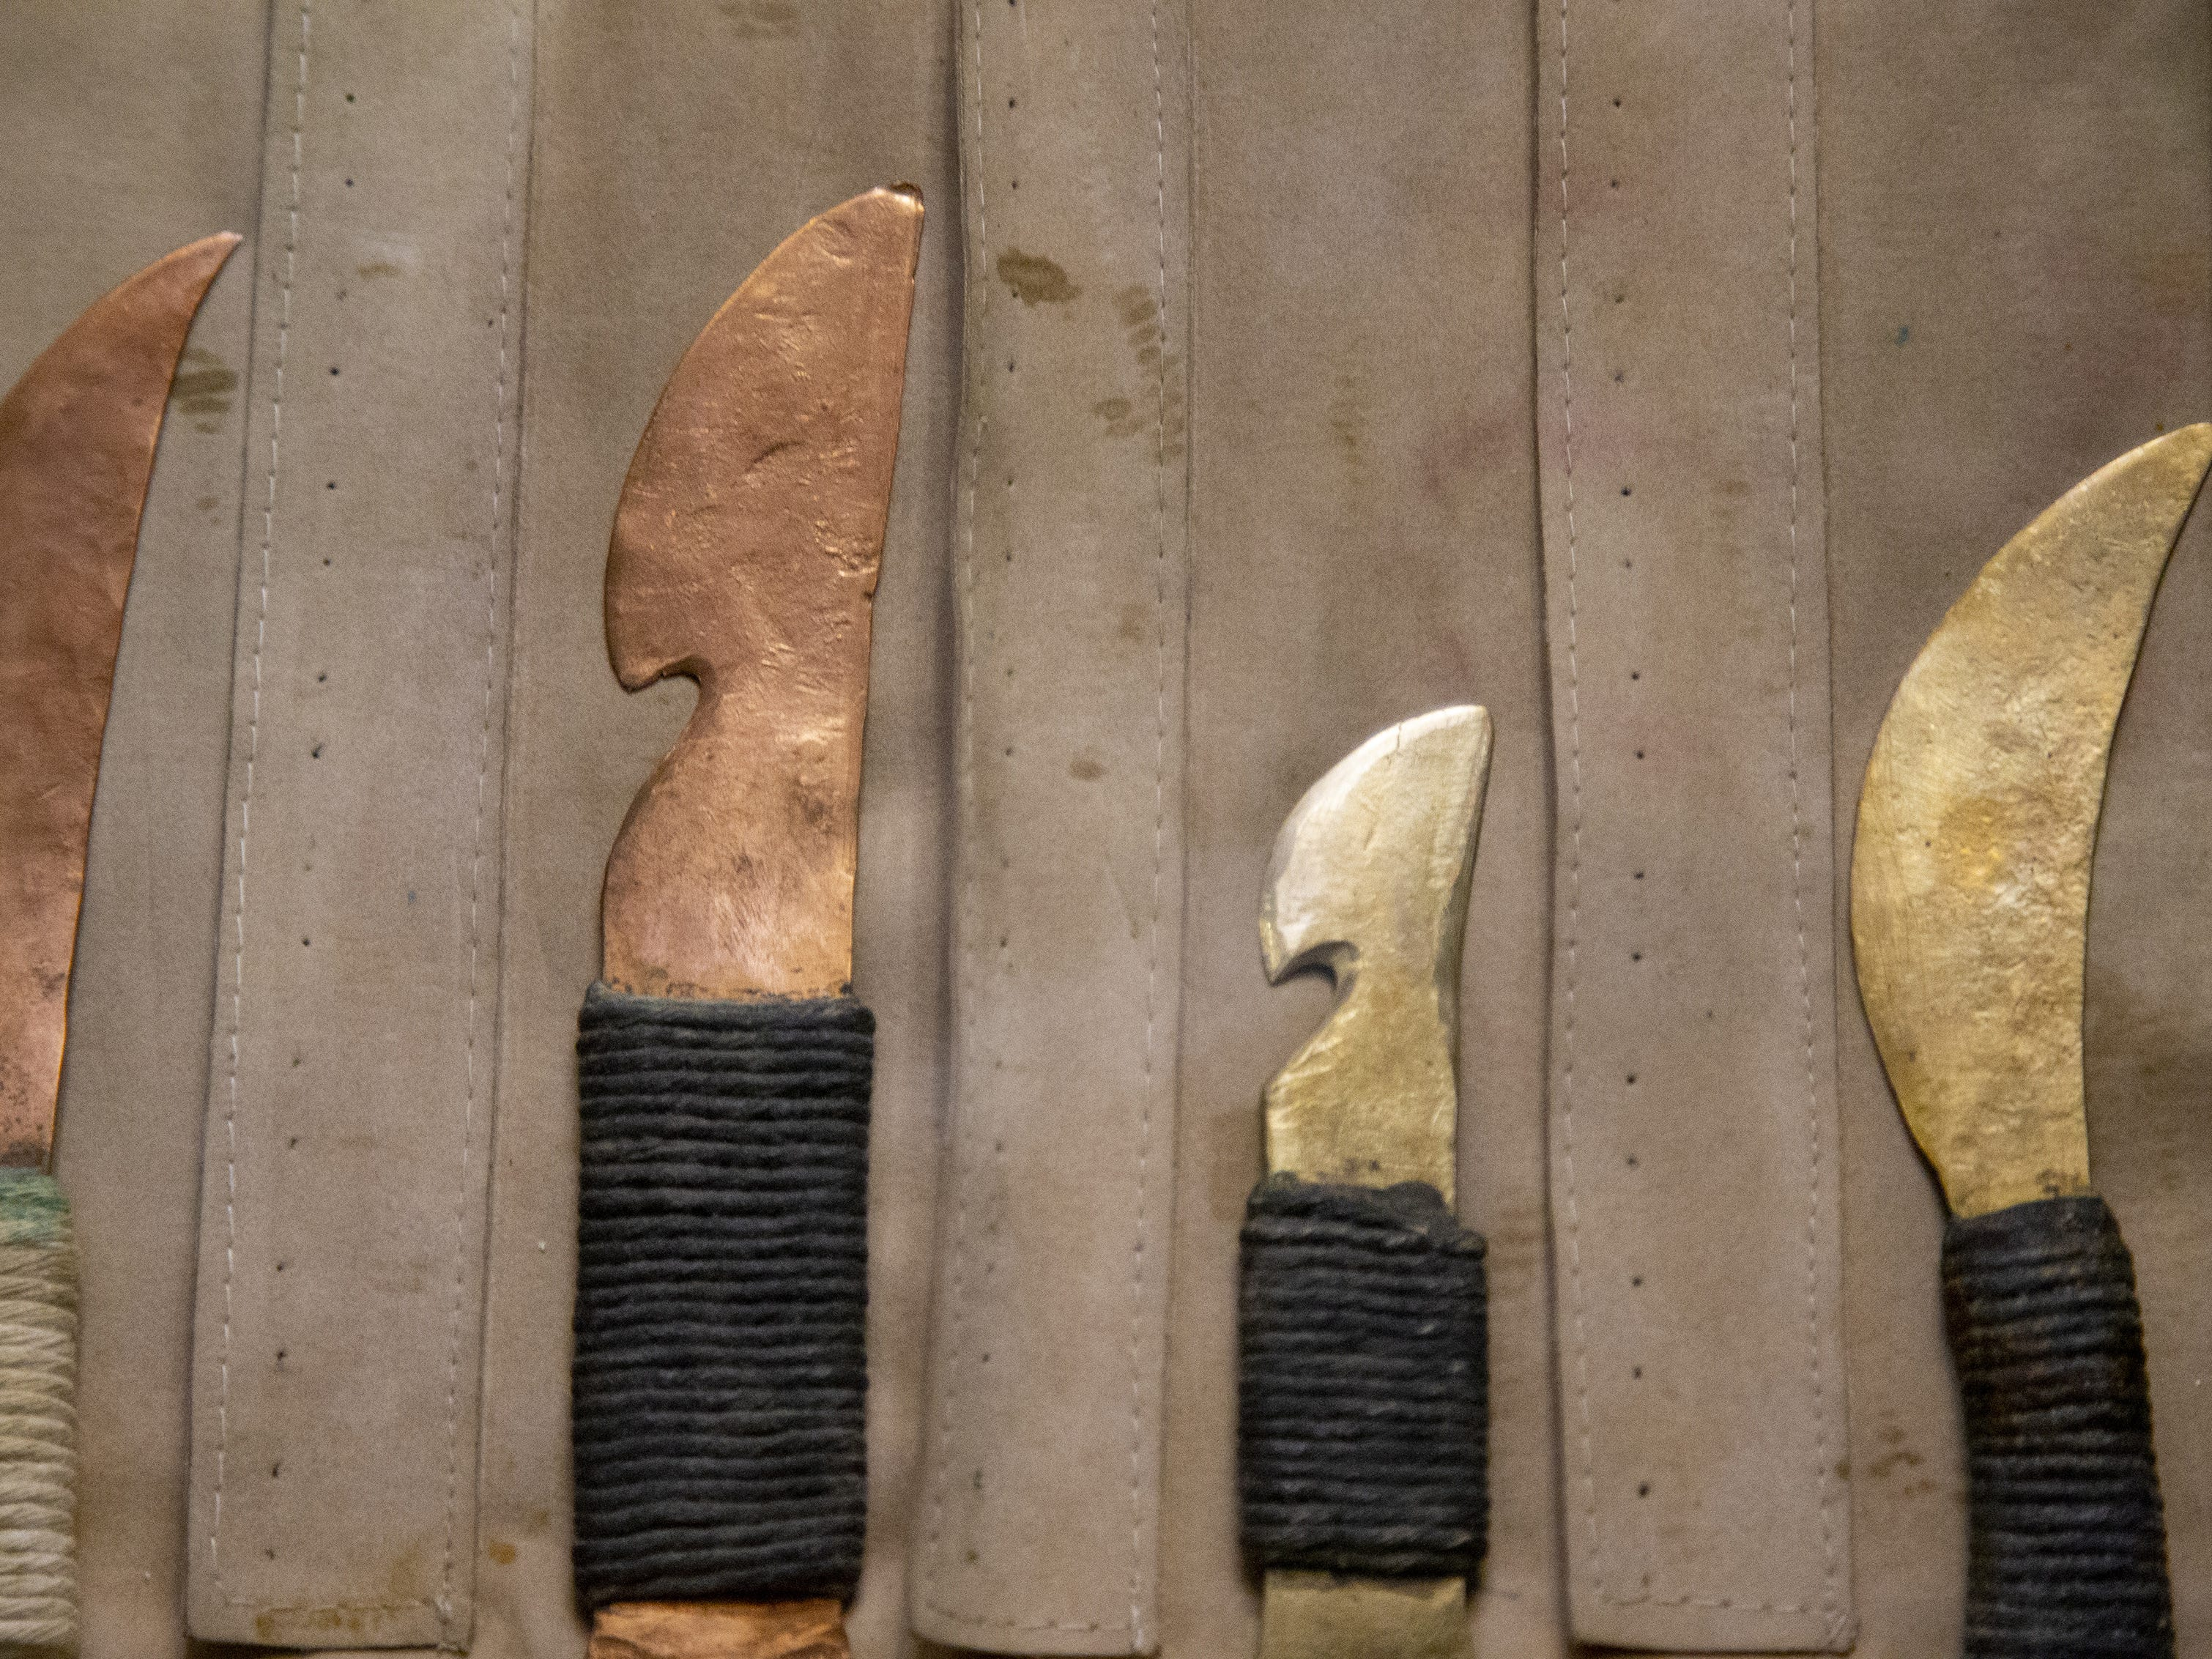 Mummies of the World: The Exhibition displays mummification tools at the Arizona Science Center. The exhibit includes mummies from Egypt, Europe and the U.S. and is open to the public from Feb. 10 through Sept. 2, 2019.